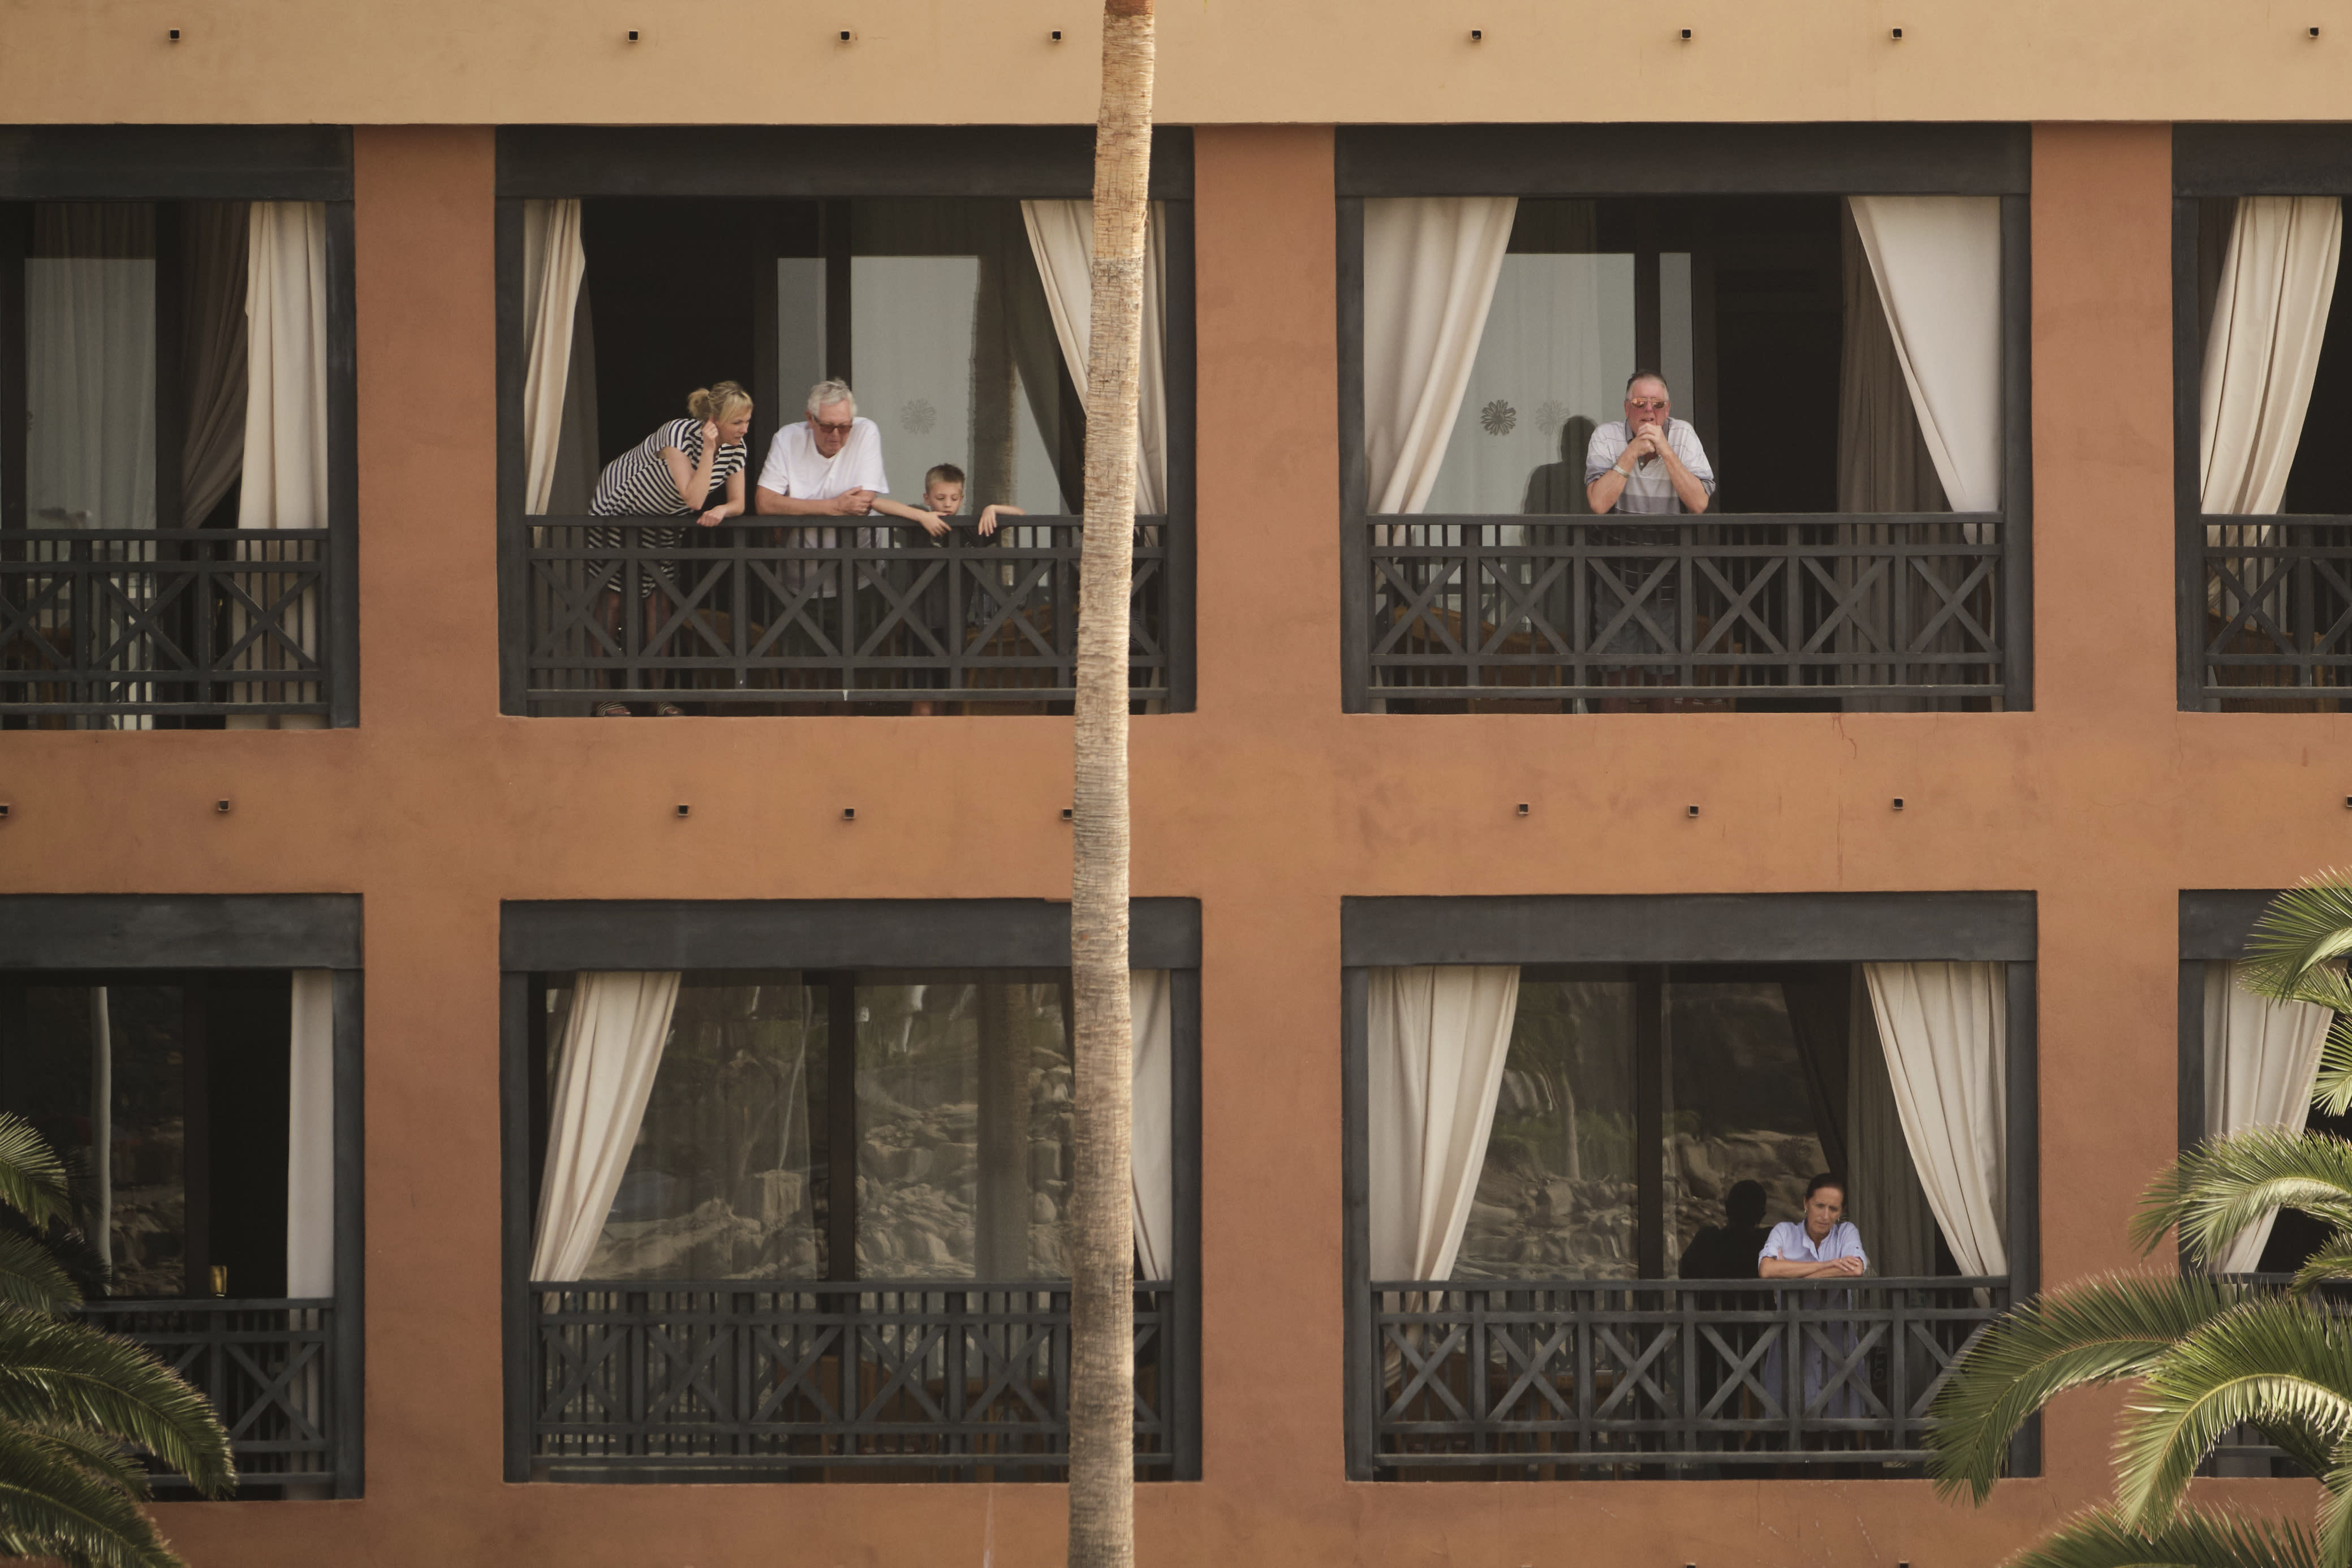 People stand on their balconies of the H10 Costa Adeje Palace hotel in the Canary Island of Tenerife, Spain, Tuesday, Feb. 25, 2020. Spanish officials say a tourist hotel on the Canary Island of Tenerife has been placed in quarantine after an Italian doctor staying there tested positive for the COVID-19 virus and Spanish news media says some 1,000 tourists staying at the complex are not allowed to leave. (AP Photo)